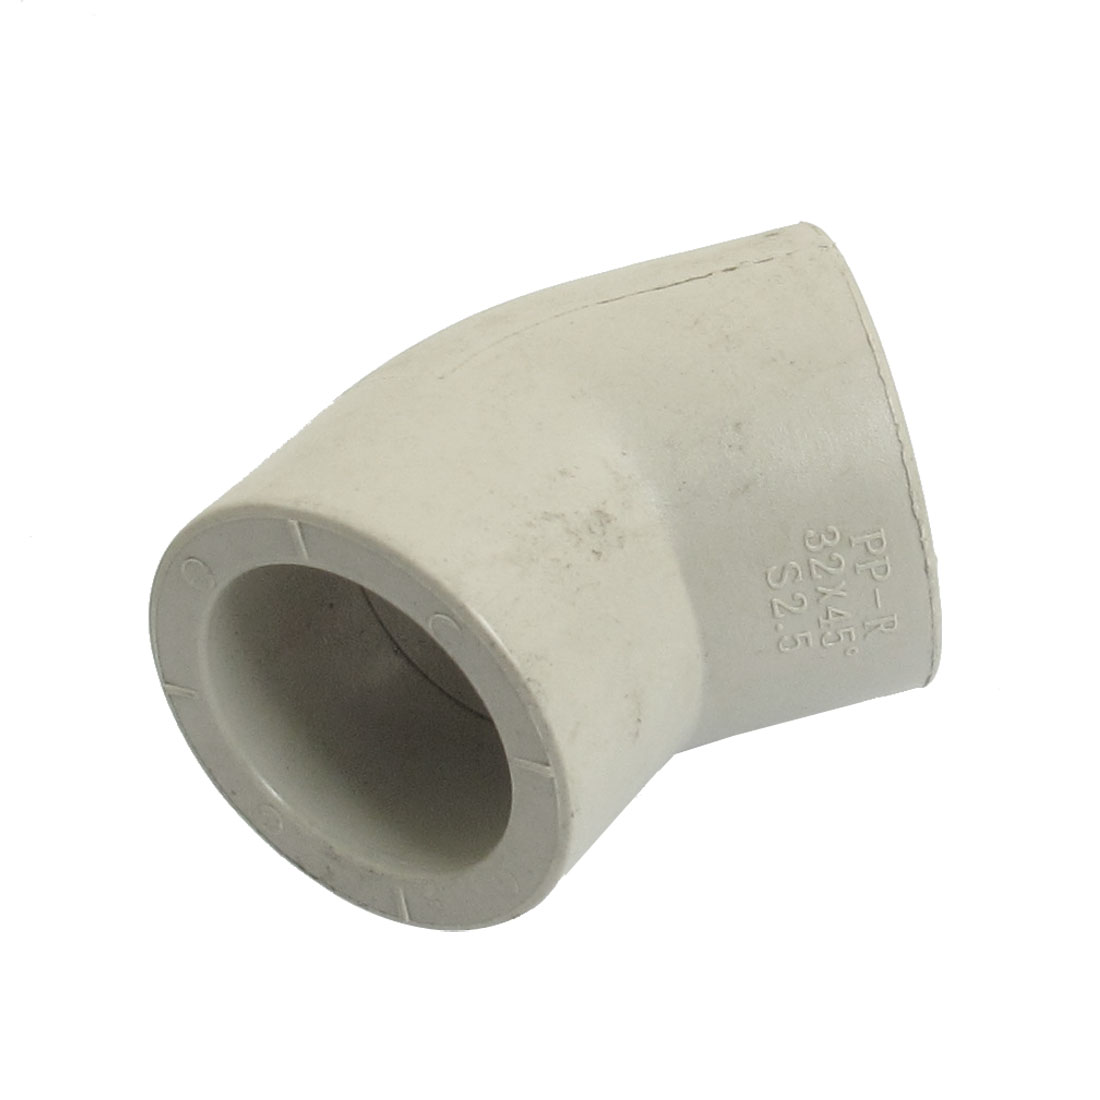 32mm Inner Diameter 45 Degree Elbow PPR Pipe Connectors Gray